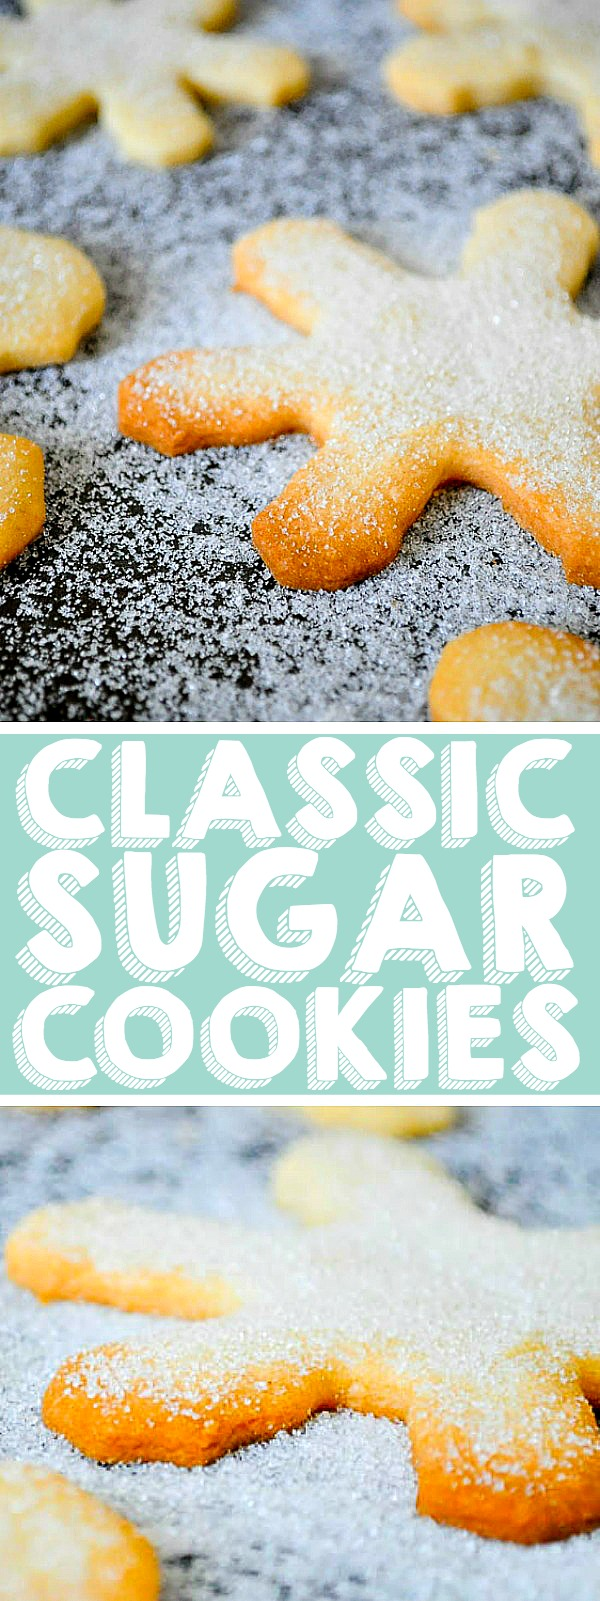 Classic Sugar Cookies - You will not miss the royal icing on this old fashioned sugar cookie recipe.This holiday cookie recipe for roll out sugar cookies makes a large batch of a light and sweet holiday classic! Perfect for holiday cookie exchange parties or food Christmas gifts!| THE LOVE NERDS #christmascookie #christmasdessert #holidaycookie